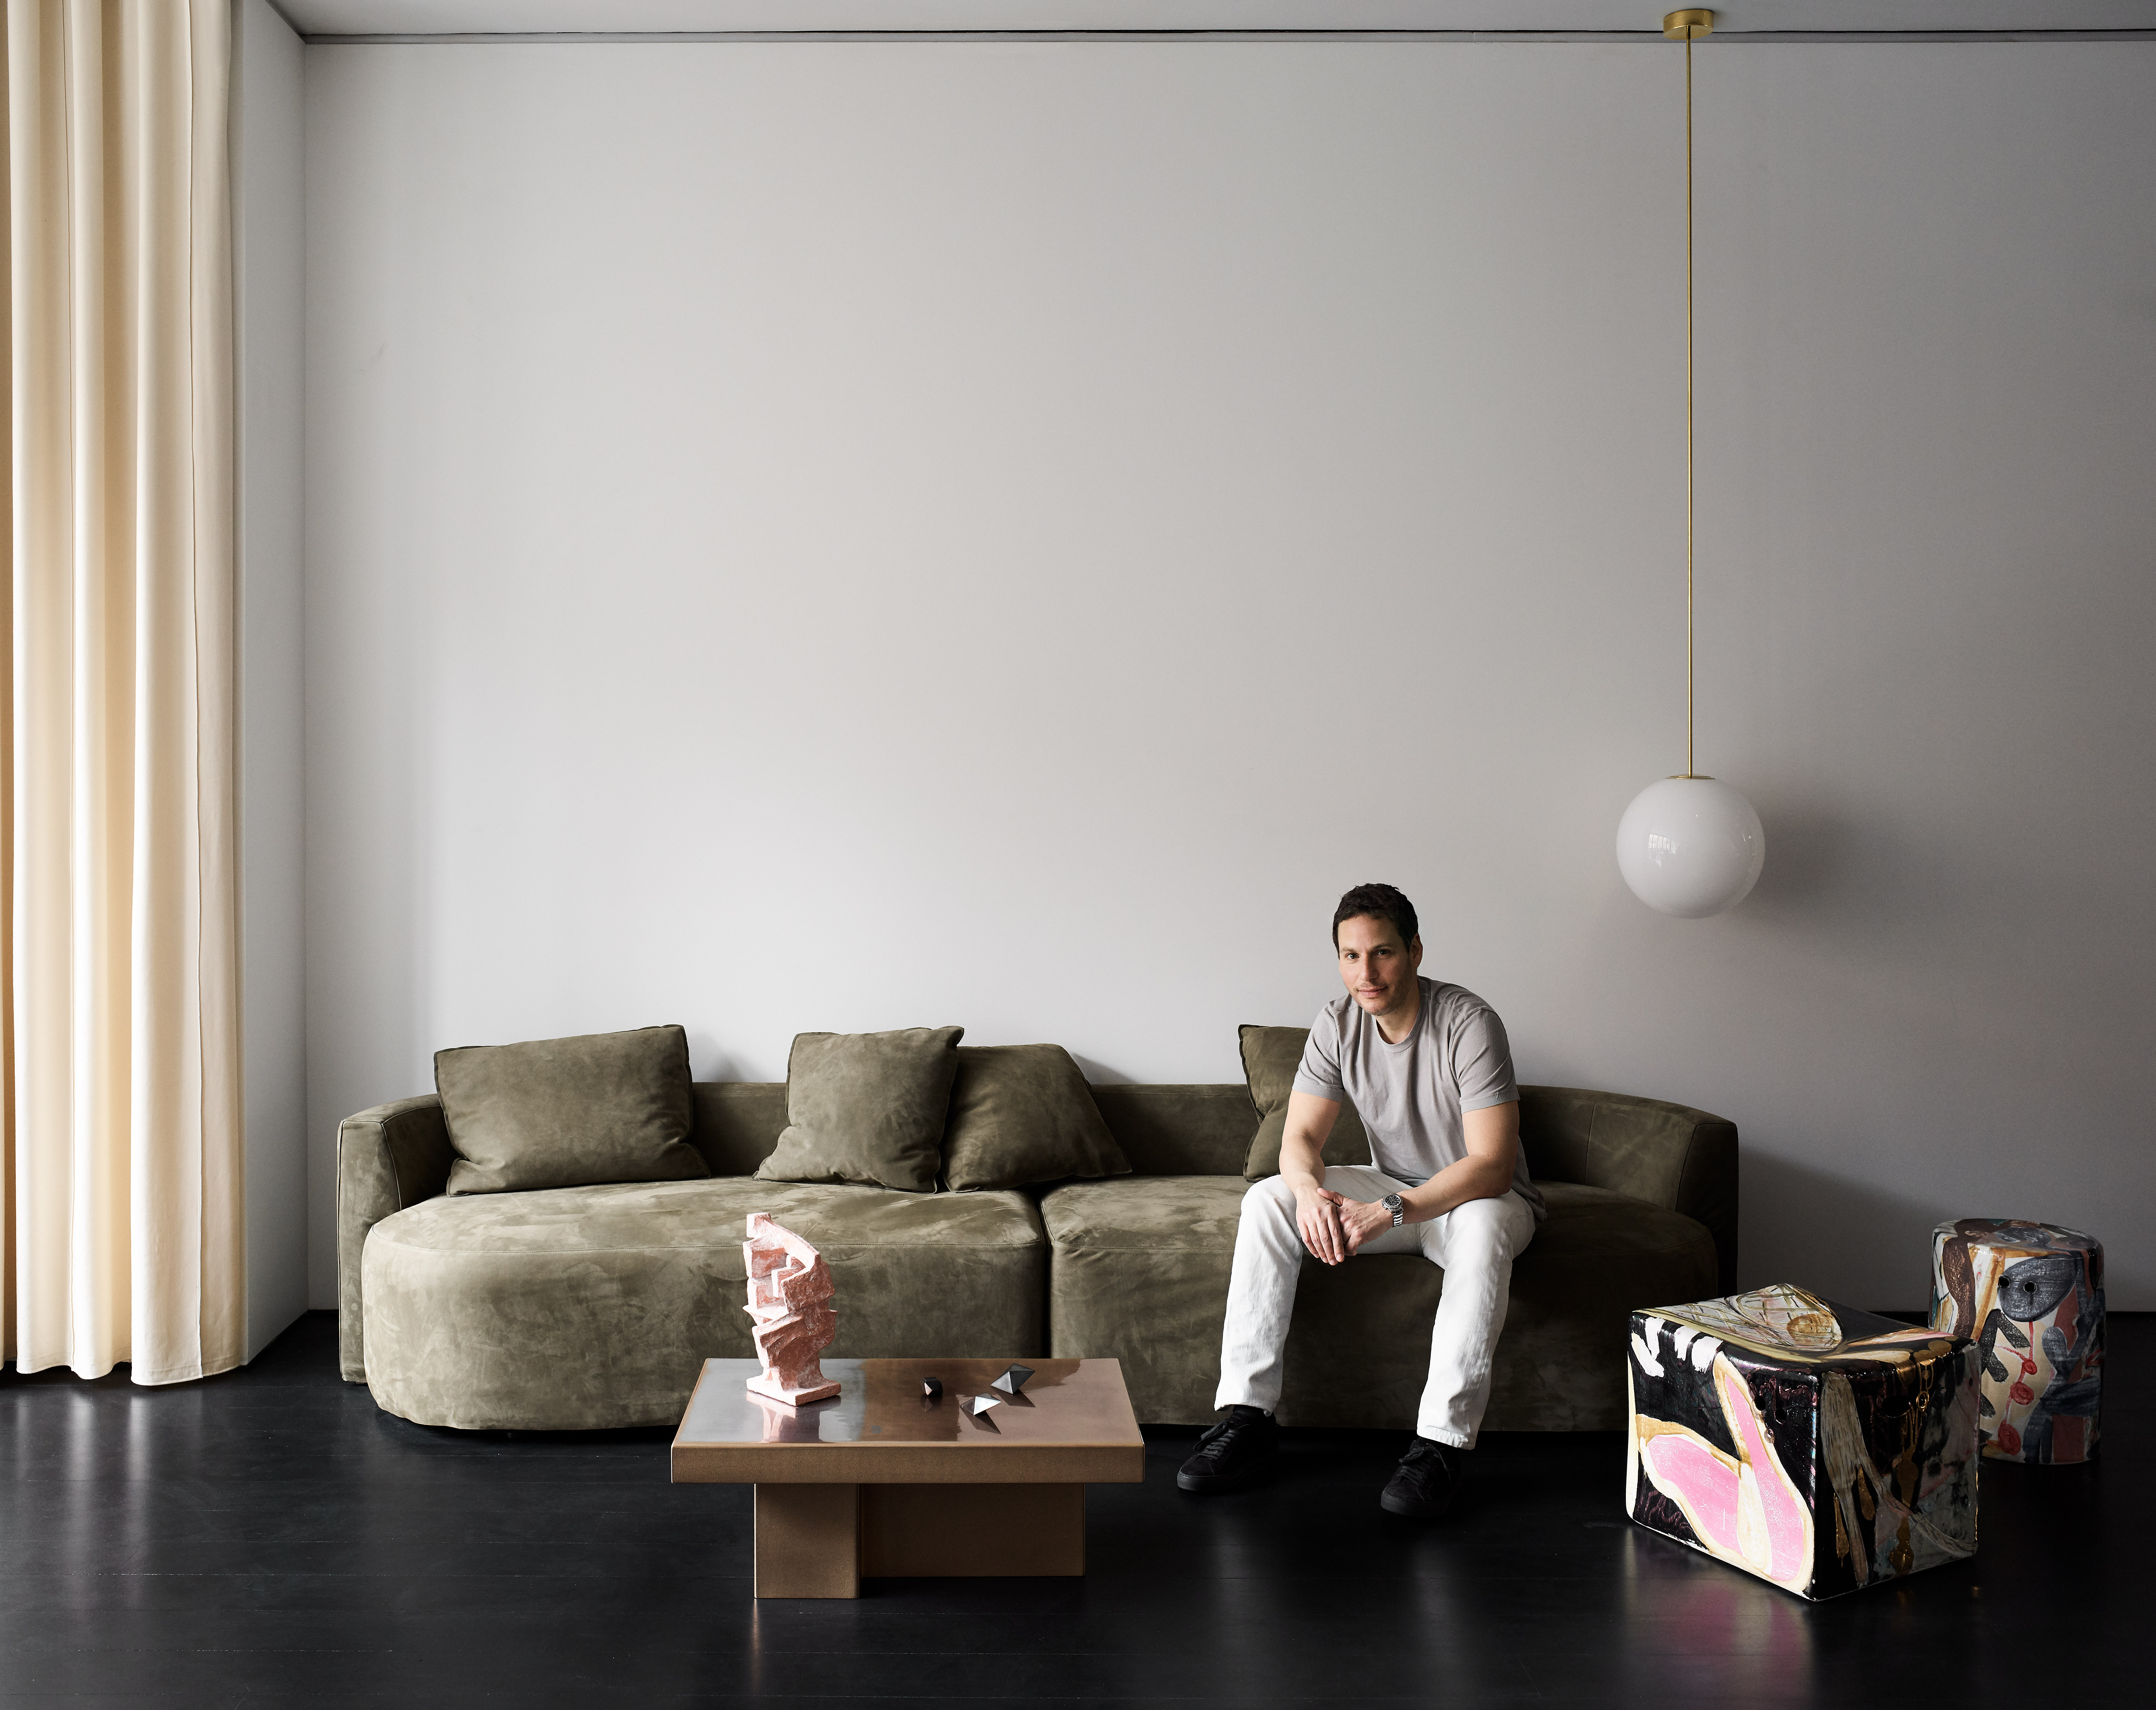 The Future Perfect founder David Alhadeff in Casa Perfect New York. Image: Douglas Friedman